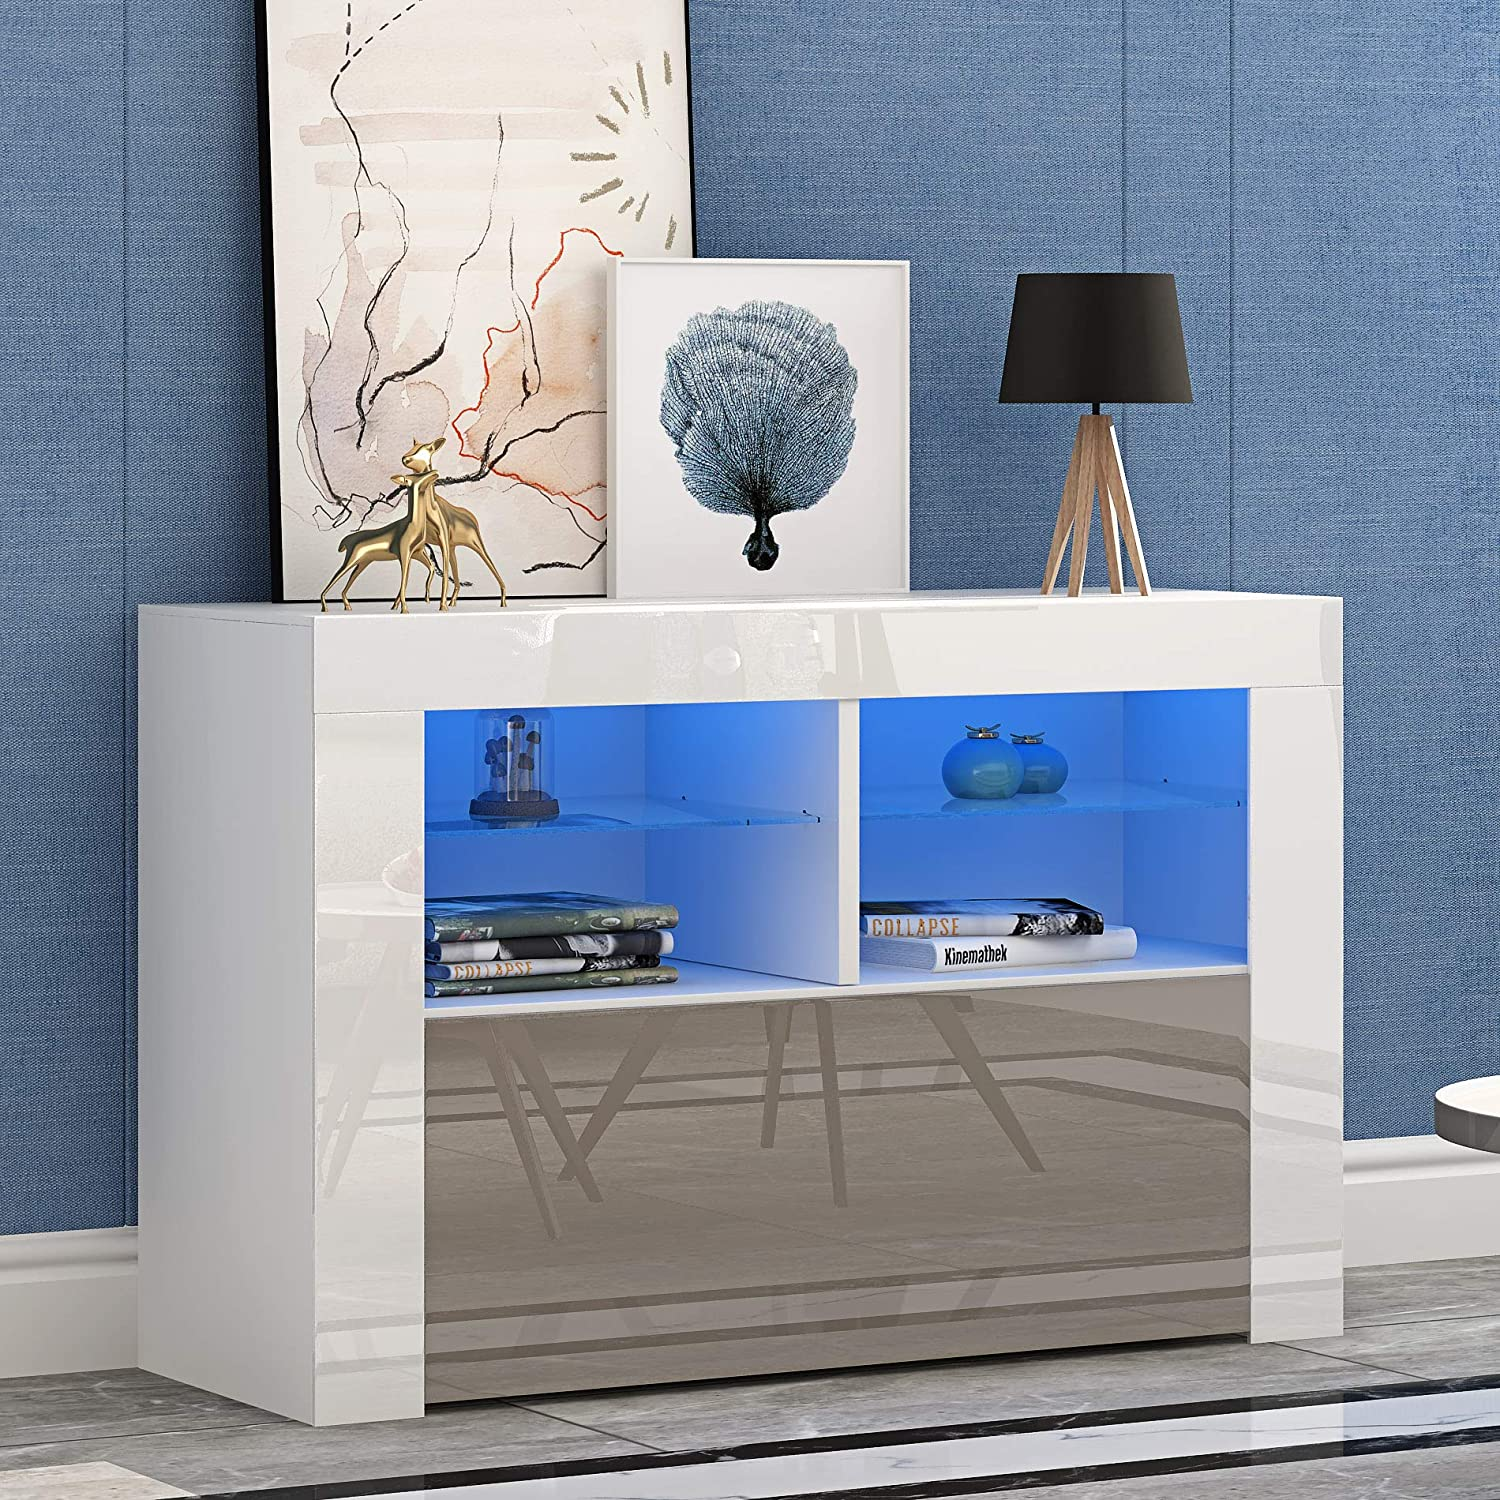 White Matt Body /& Gray High Gloss Fronts + Led light Front RGB LED TV Stand Cabinet Unit Modern 100cm TV Desk with Storage for Entertainment Living Room